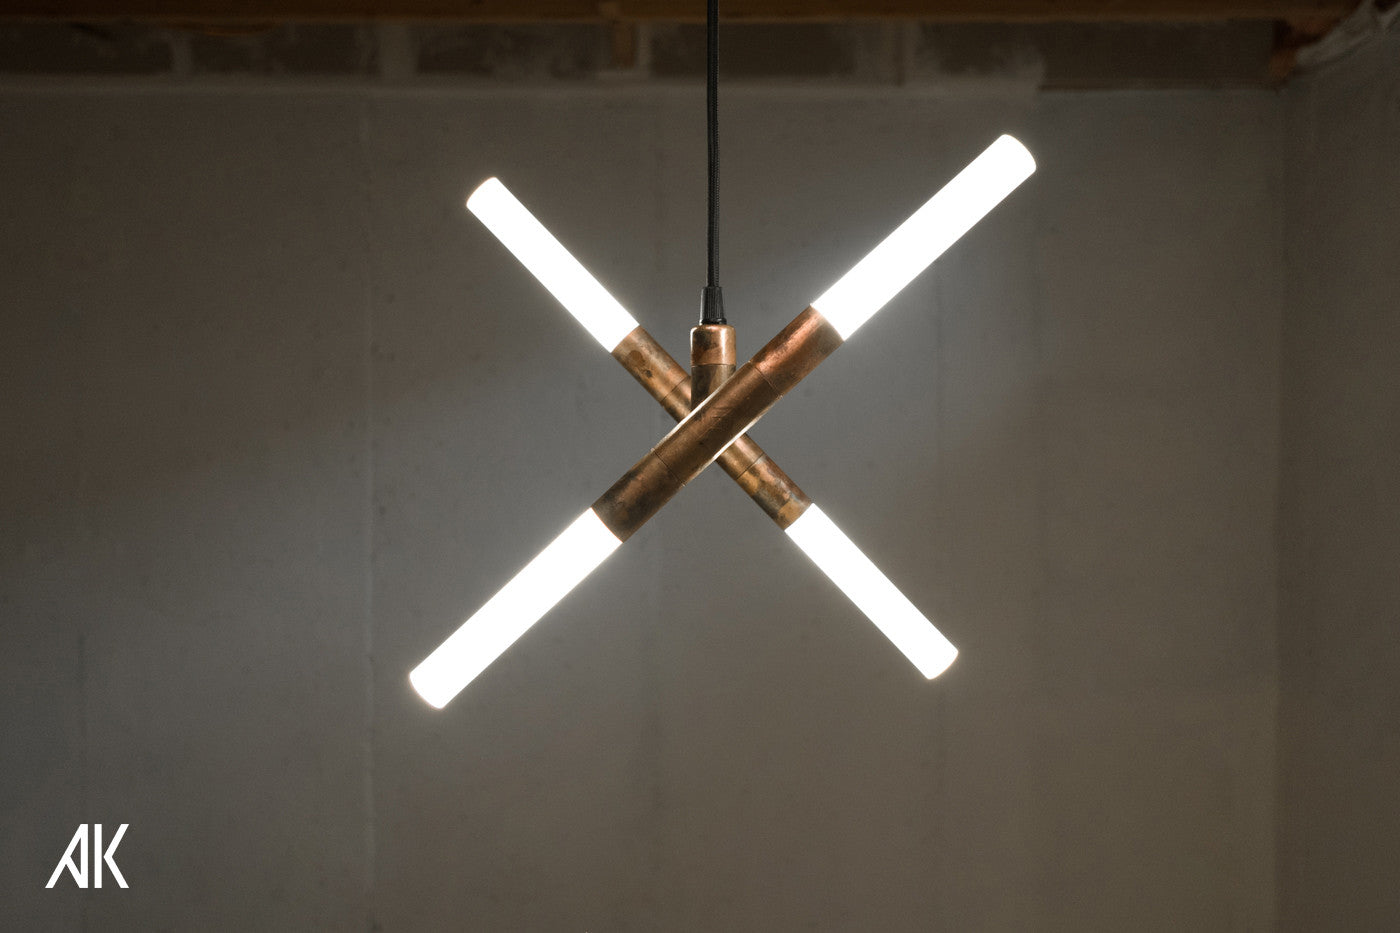 A geometric pendant lamp made with copper pipe, resembling a cross.